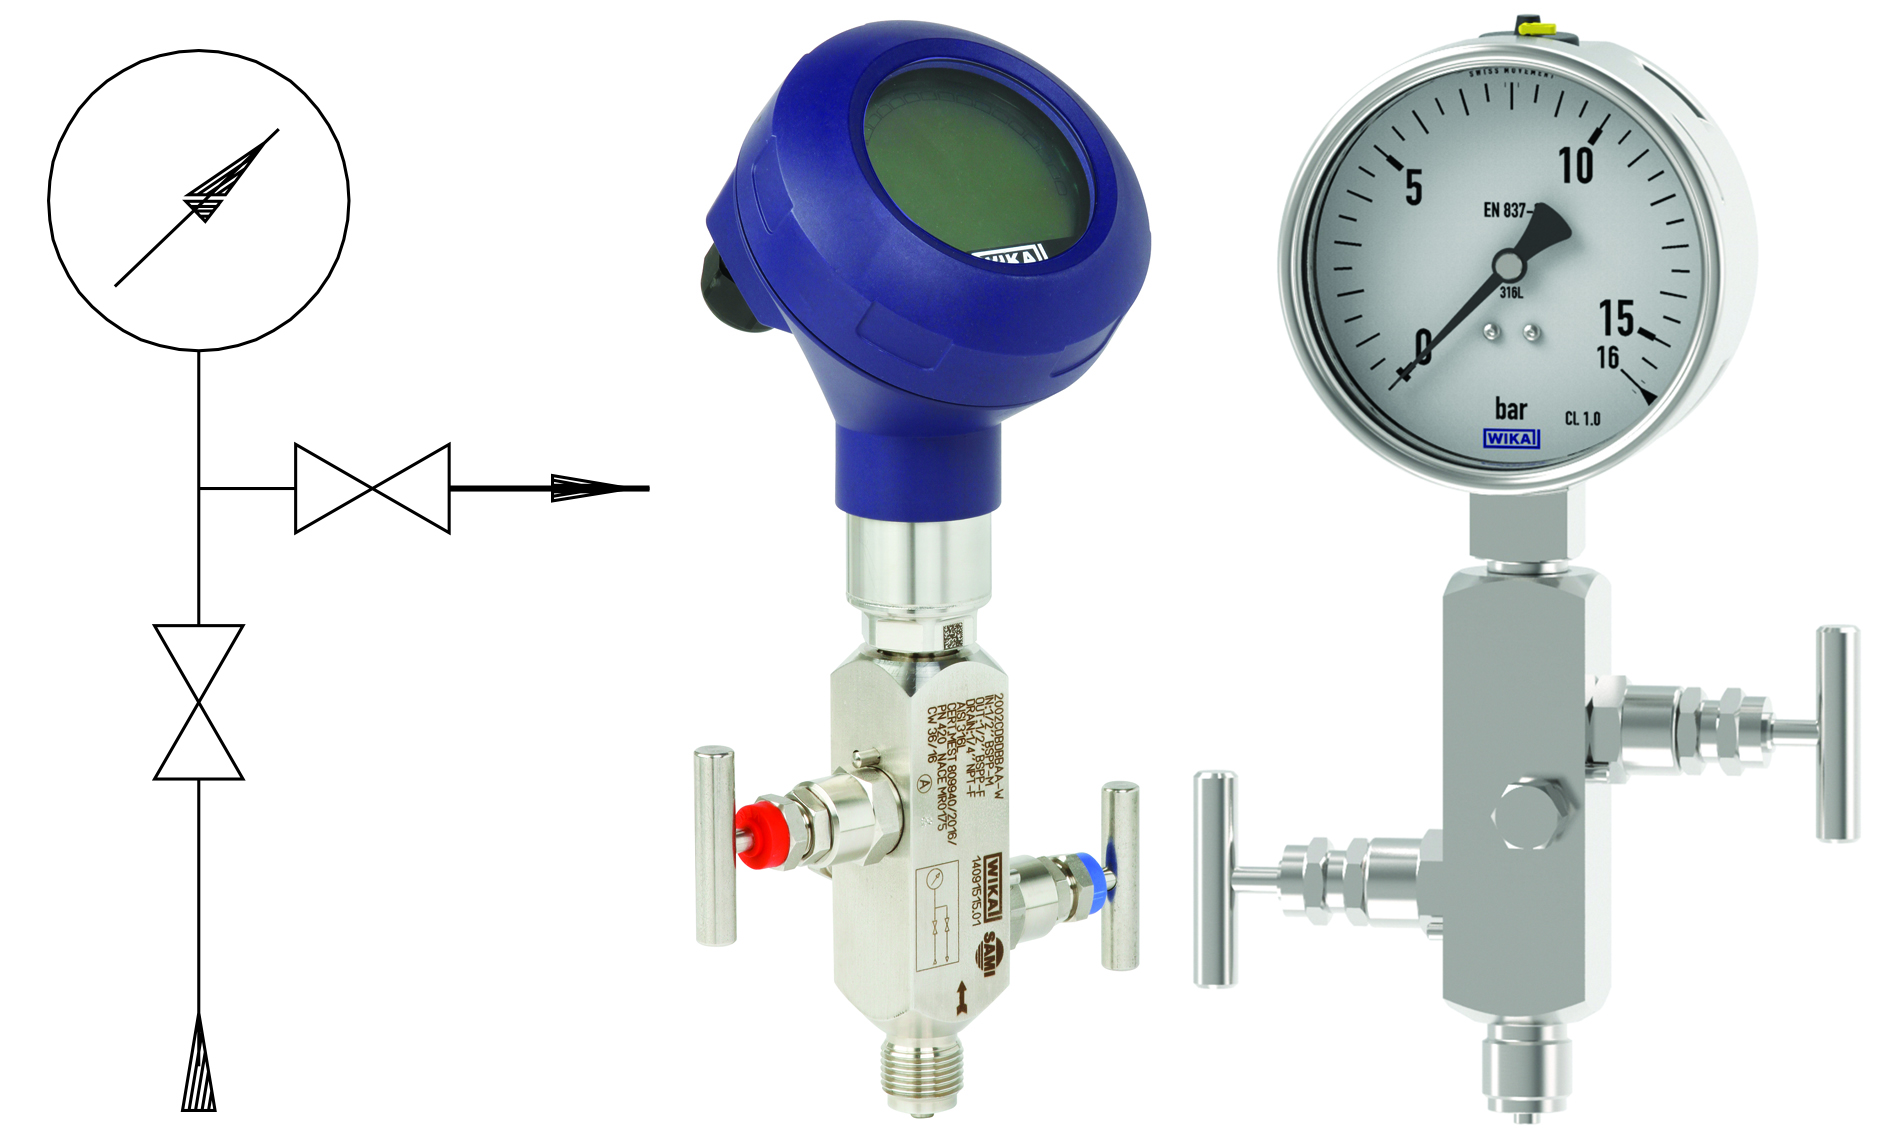 pressure gauge hook up Wika's fast team of audit experts knows that all too often this isn't the case not installing your gauges properly can lead to premature gauge failure and prevent you from troubleshooting issues with equipment or processes.